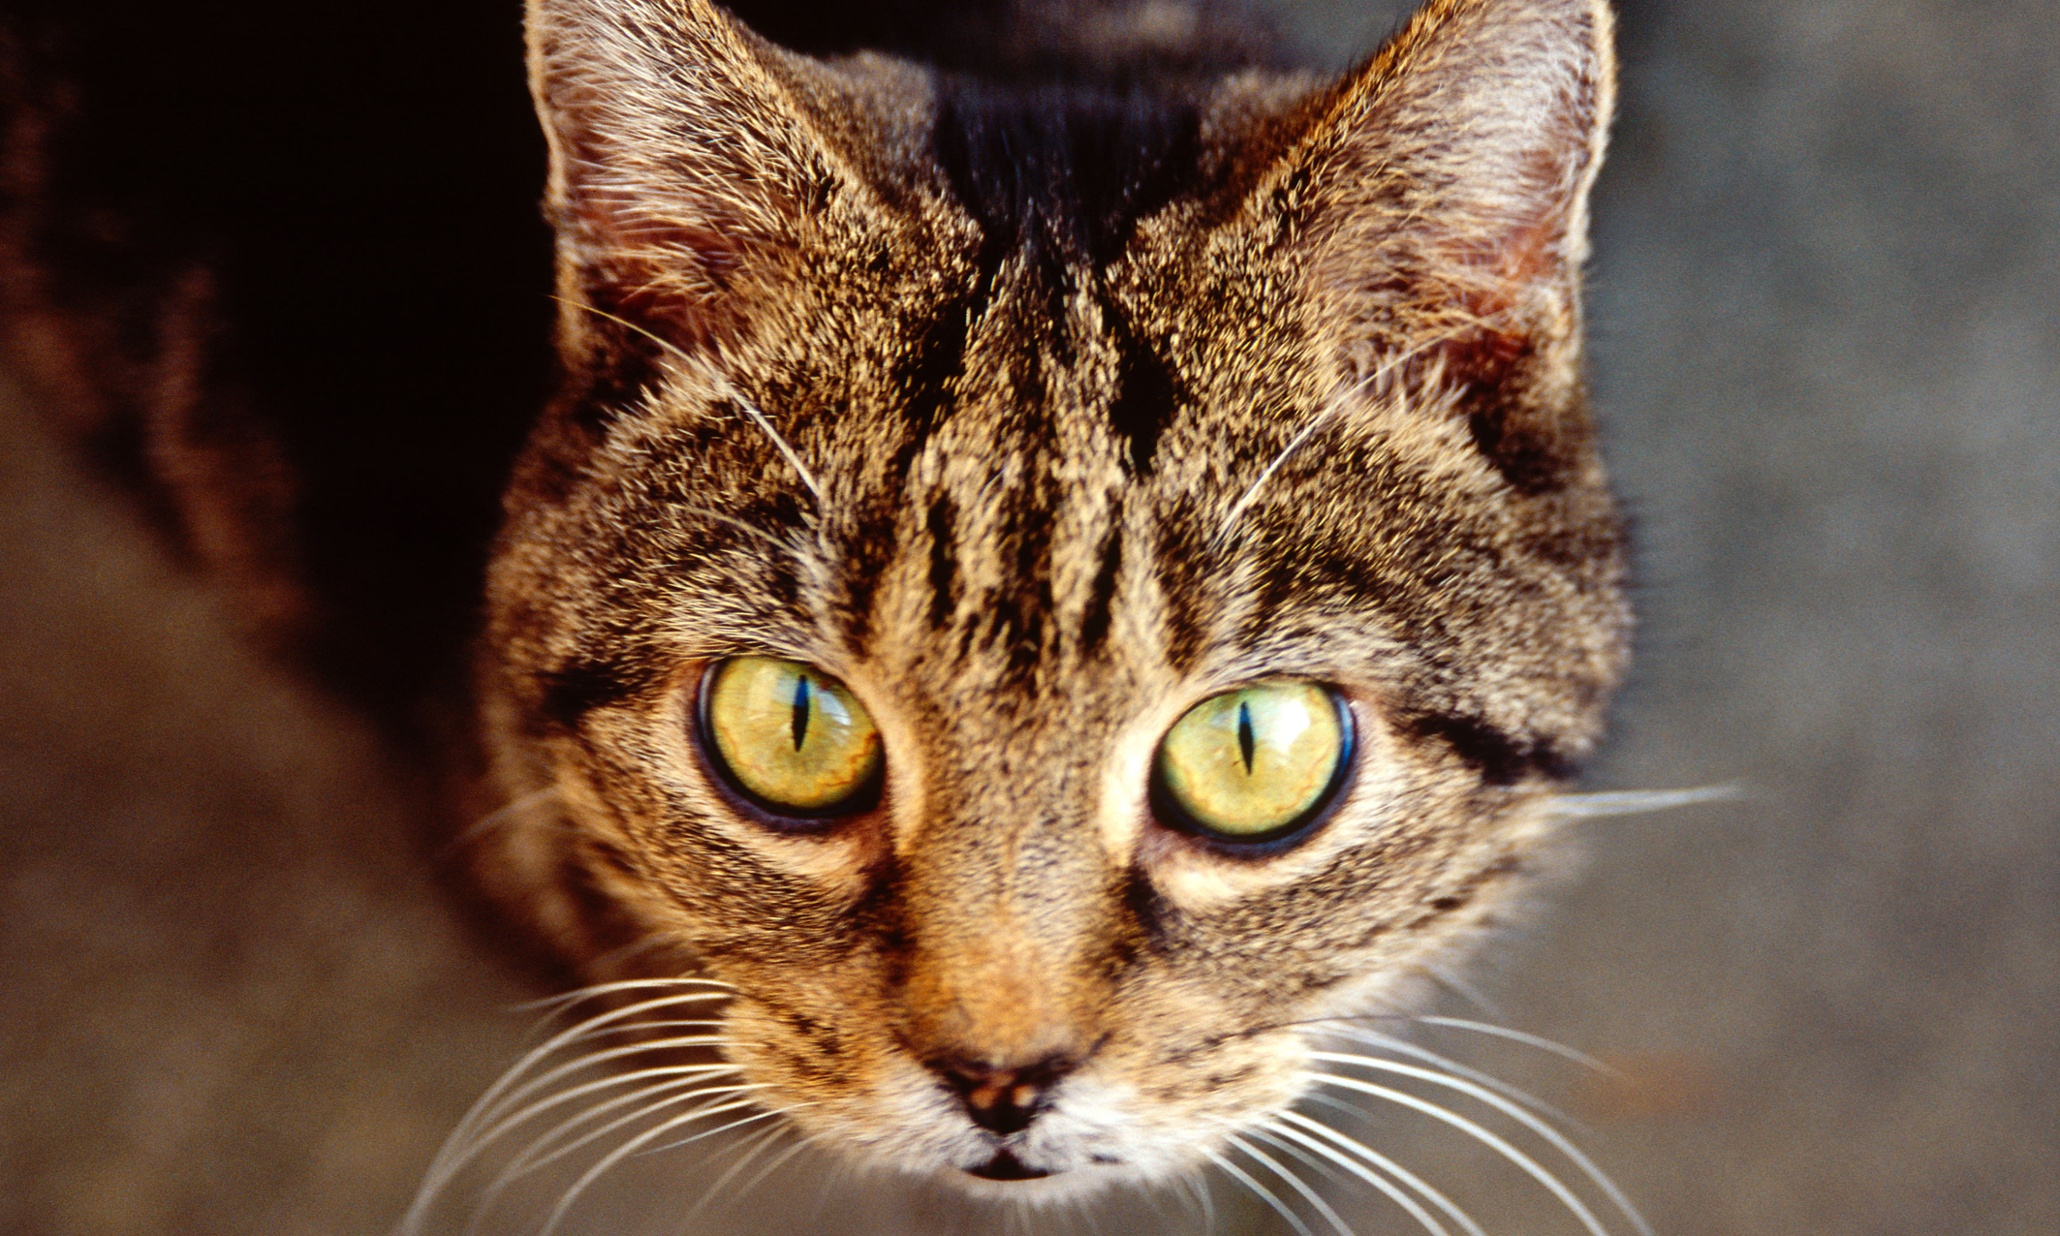 UK: Why are so many cats being poisoned?